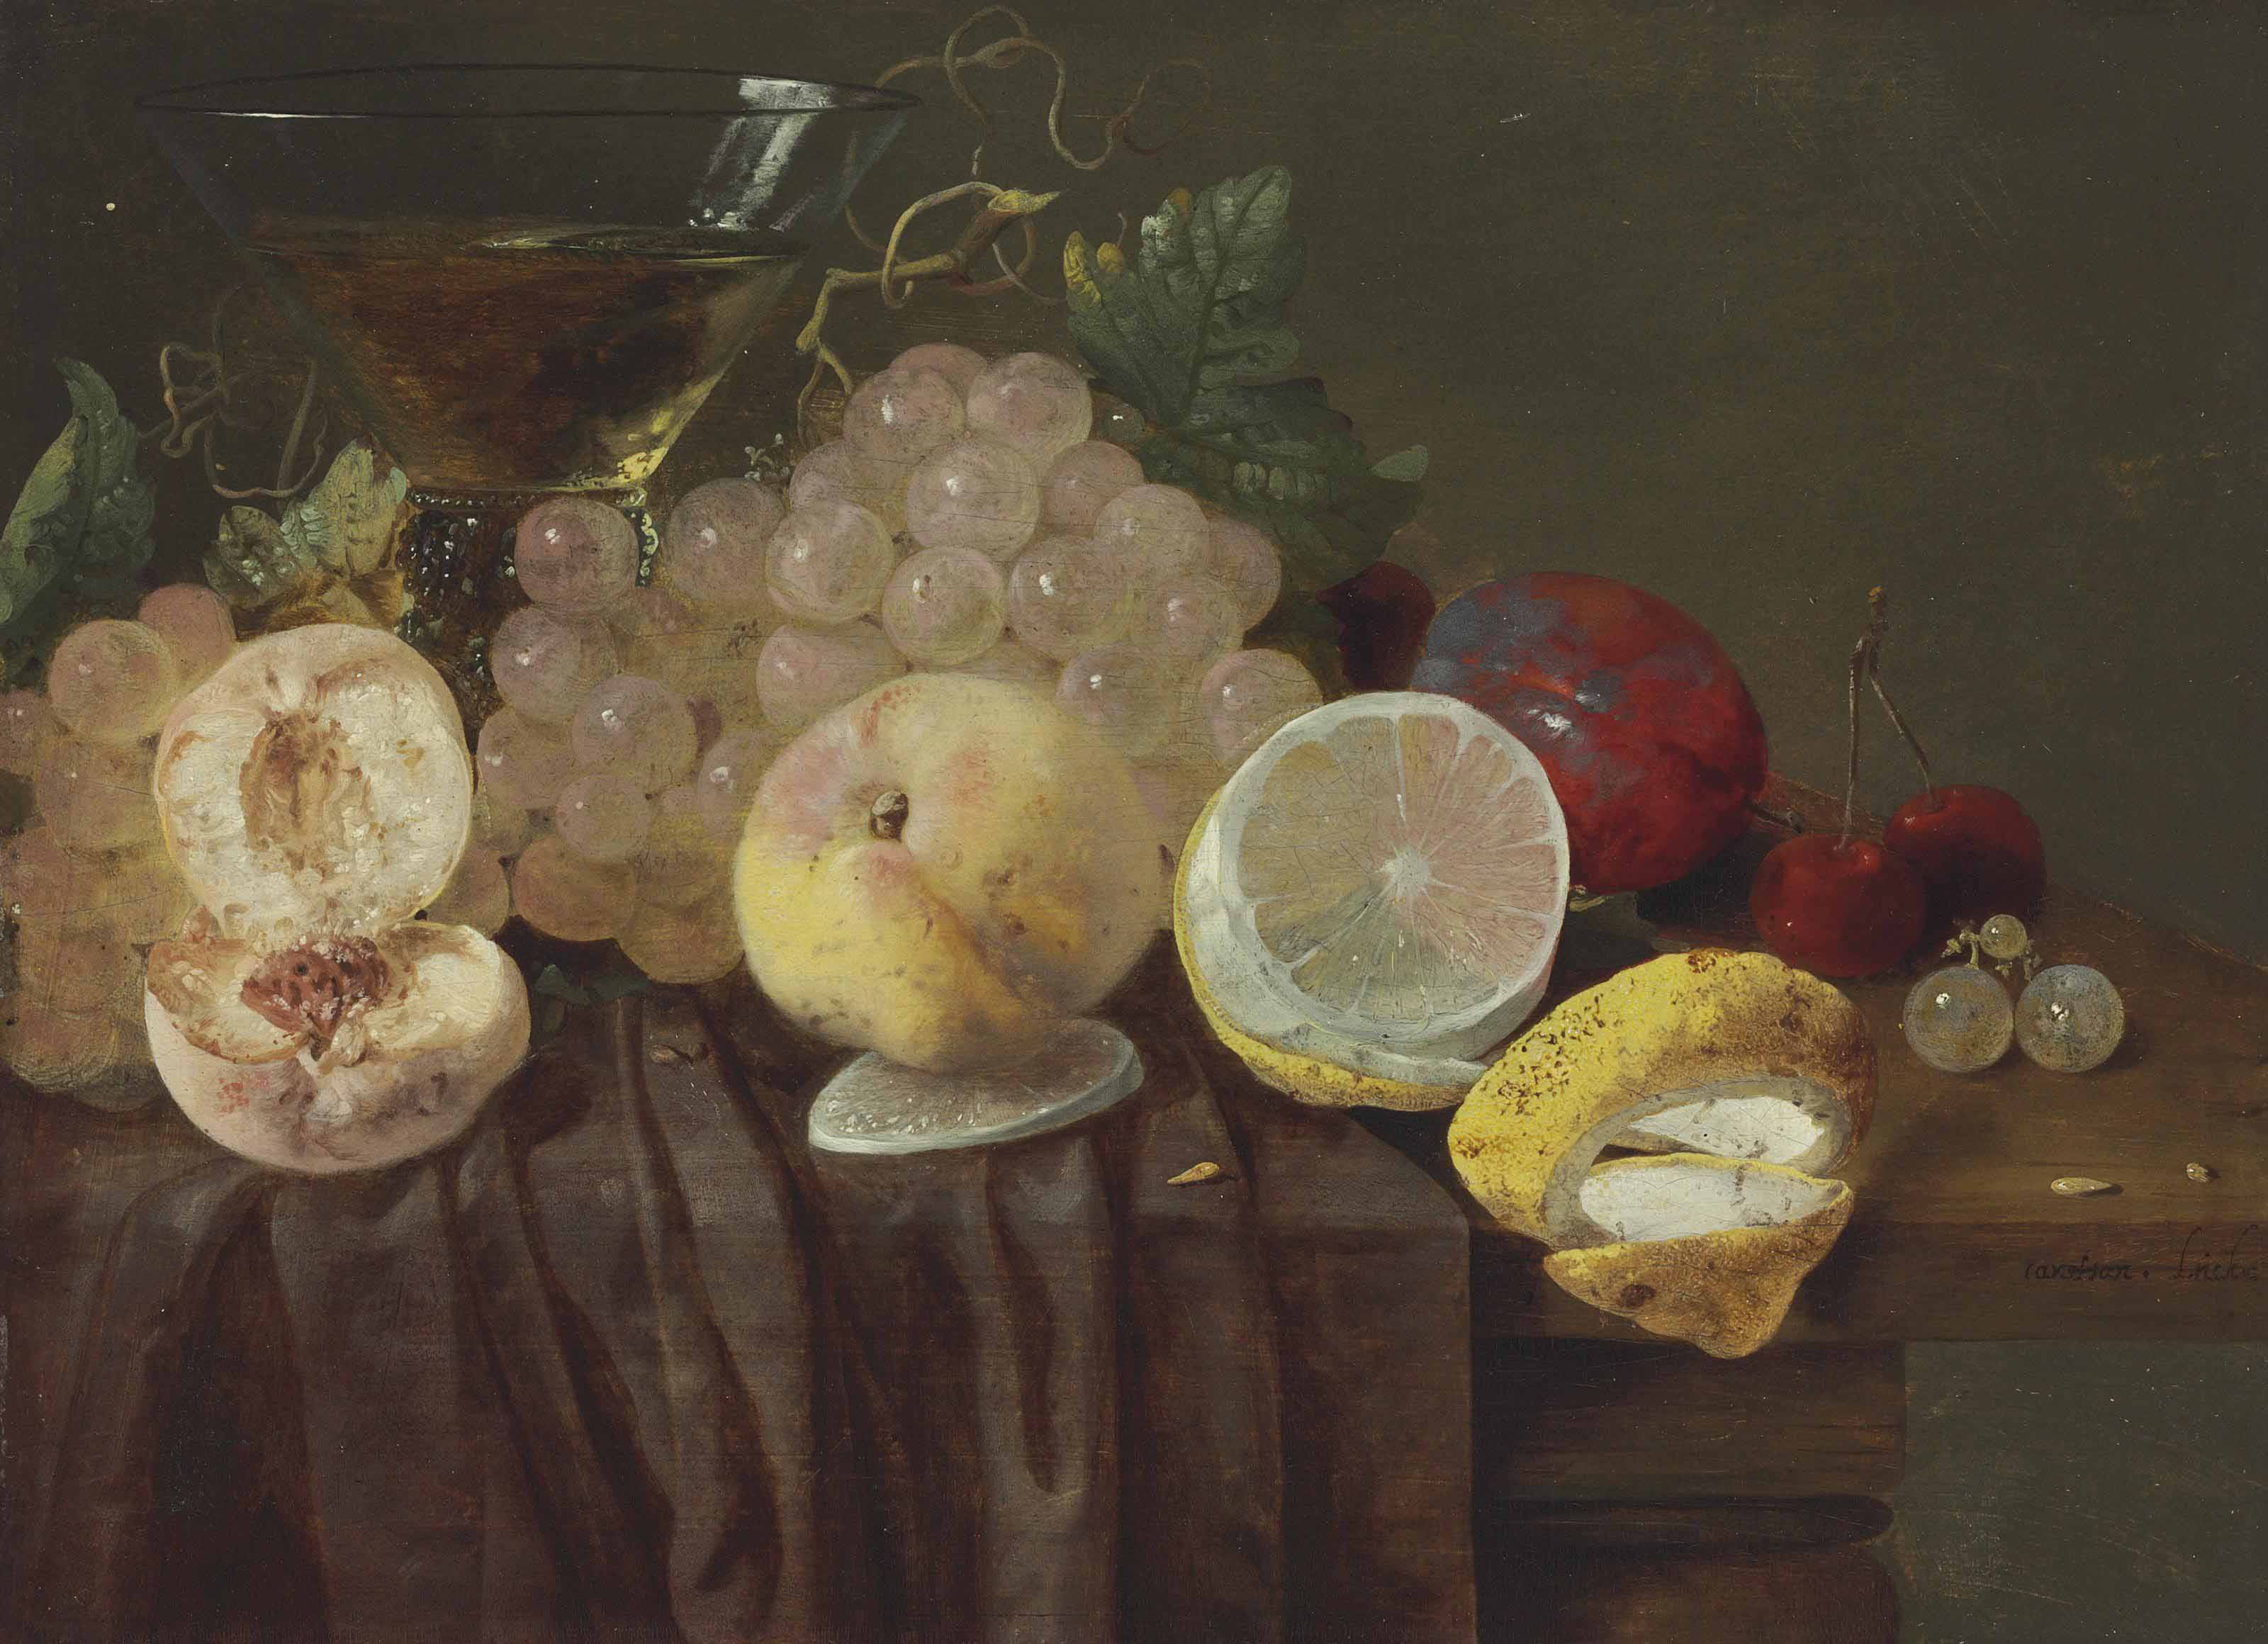 Grapes, peaches, a lemon, plums, cherries and a roemer on a partially-draped table